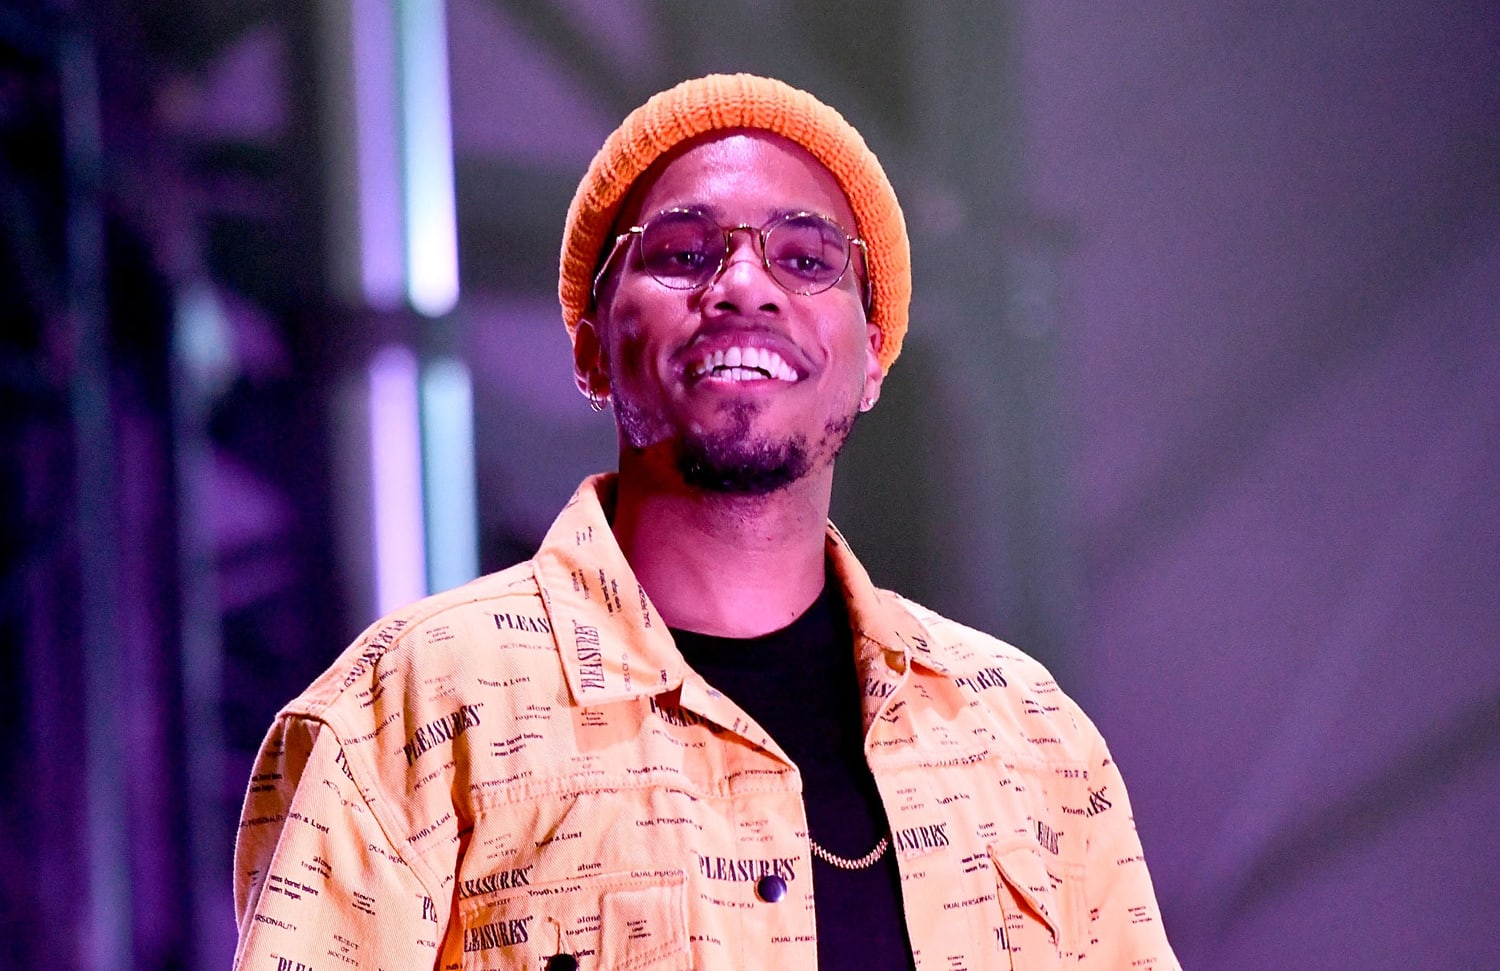 anderson-paak-getty-scott-dudelson